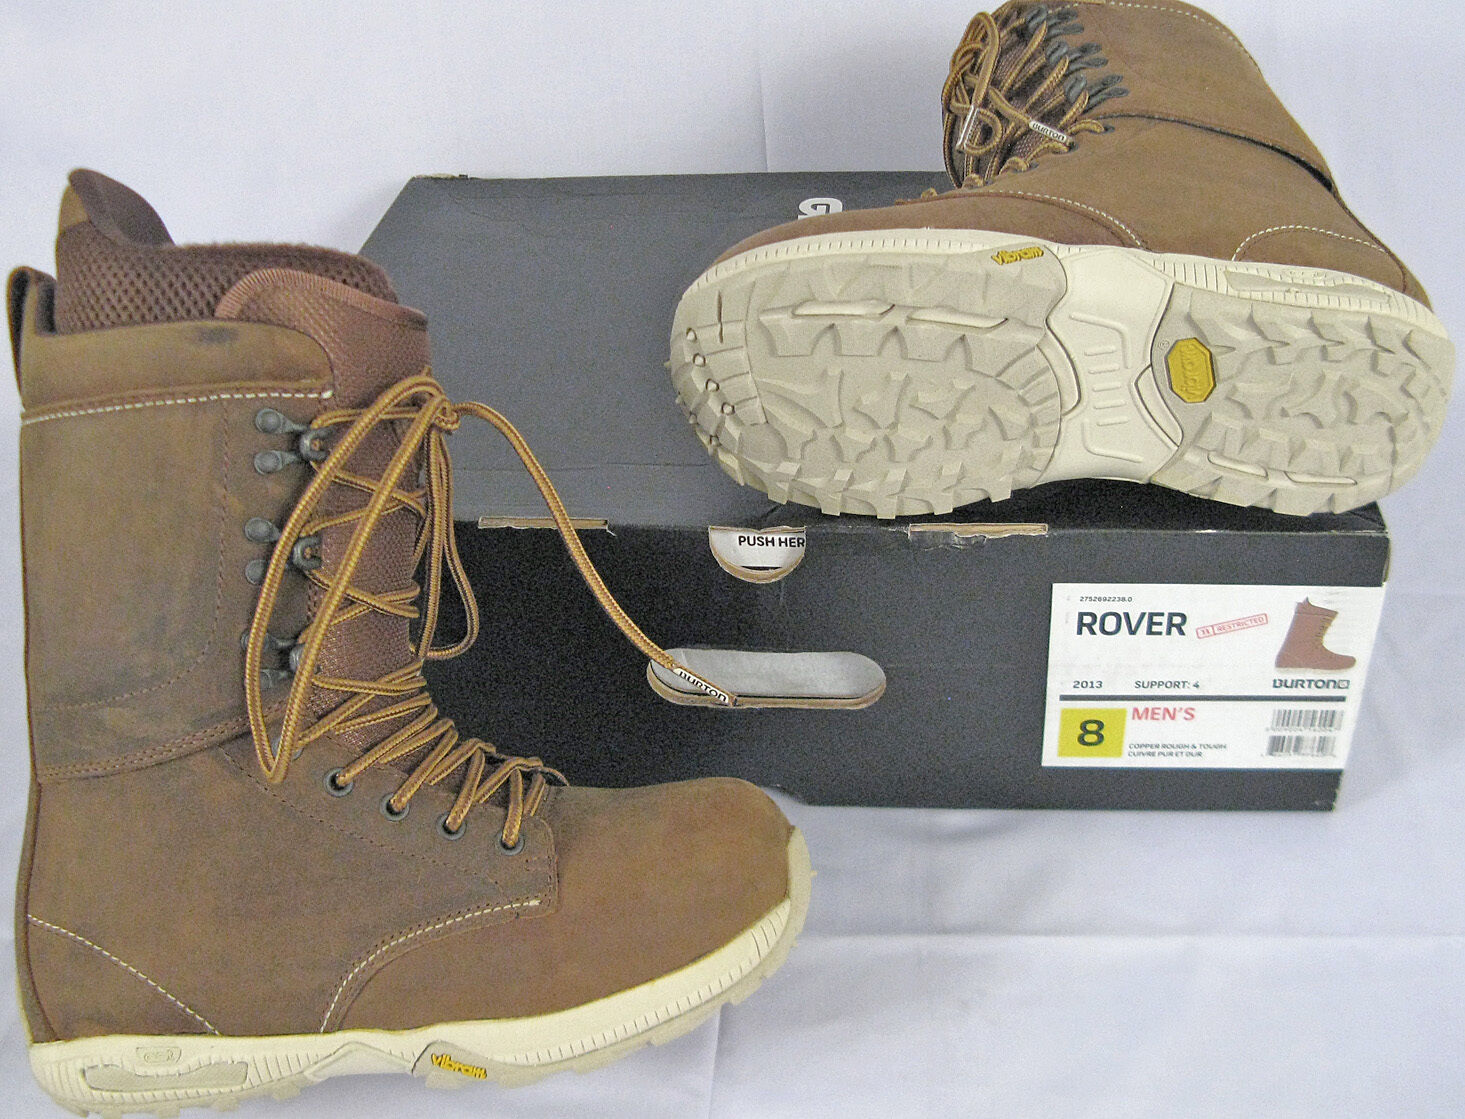 NEW   350 Burton Rover Mens Snowboard  Boots    8  or  7.5  support wholesale retail